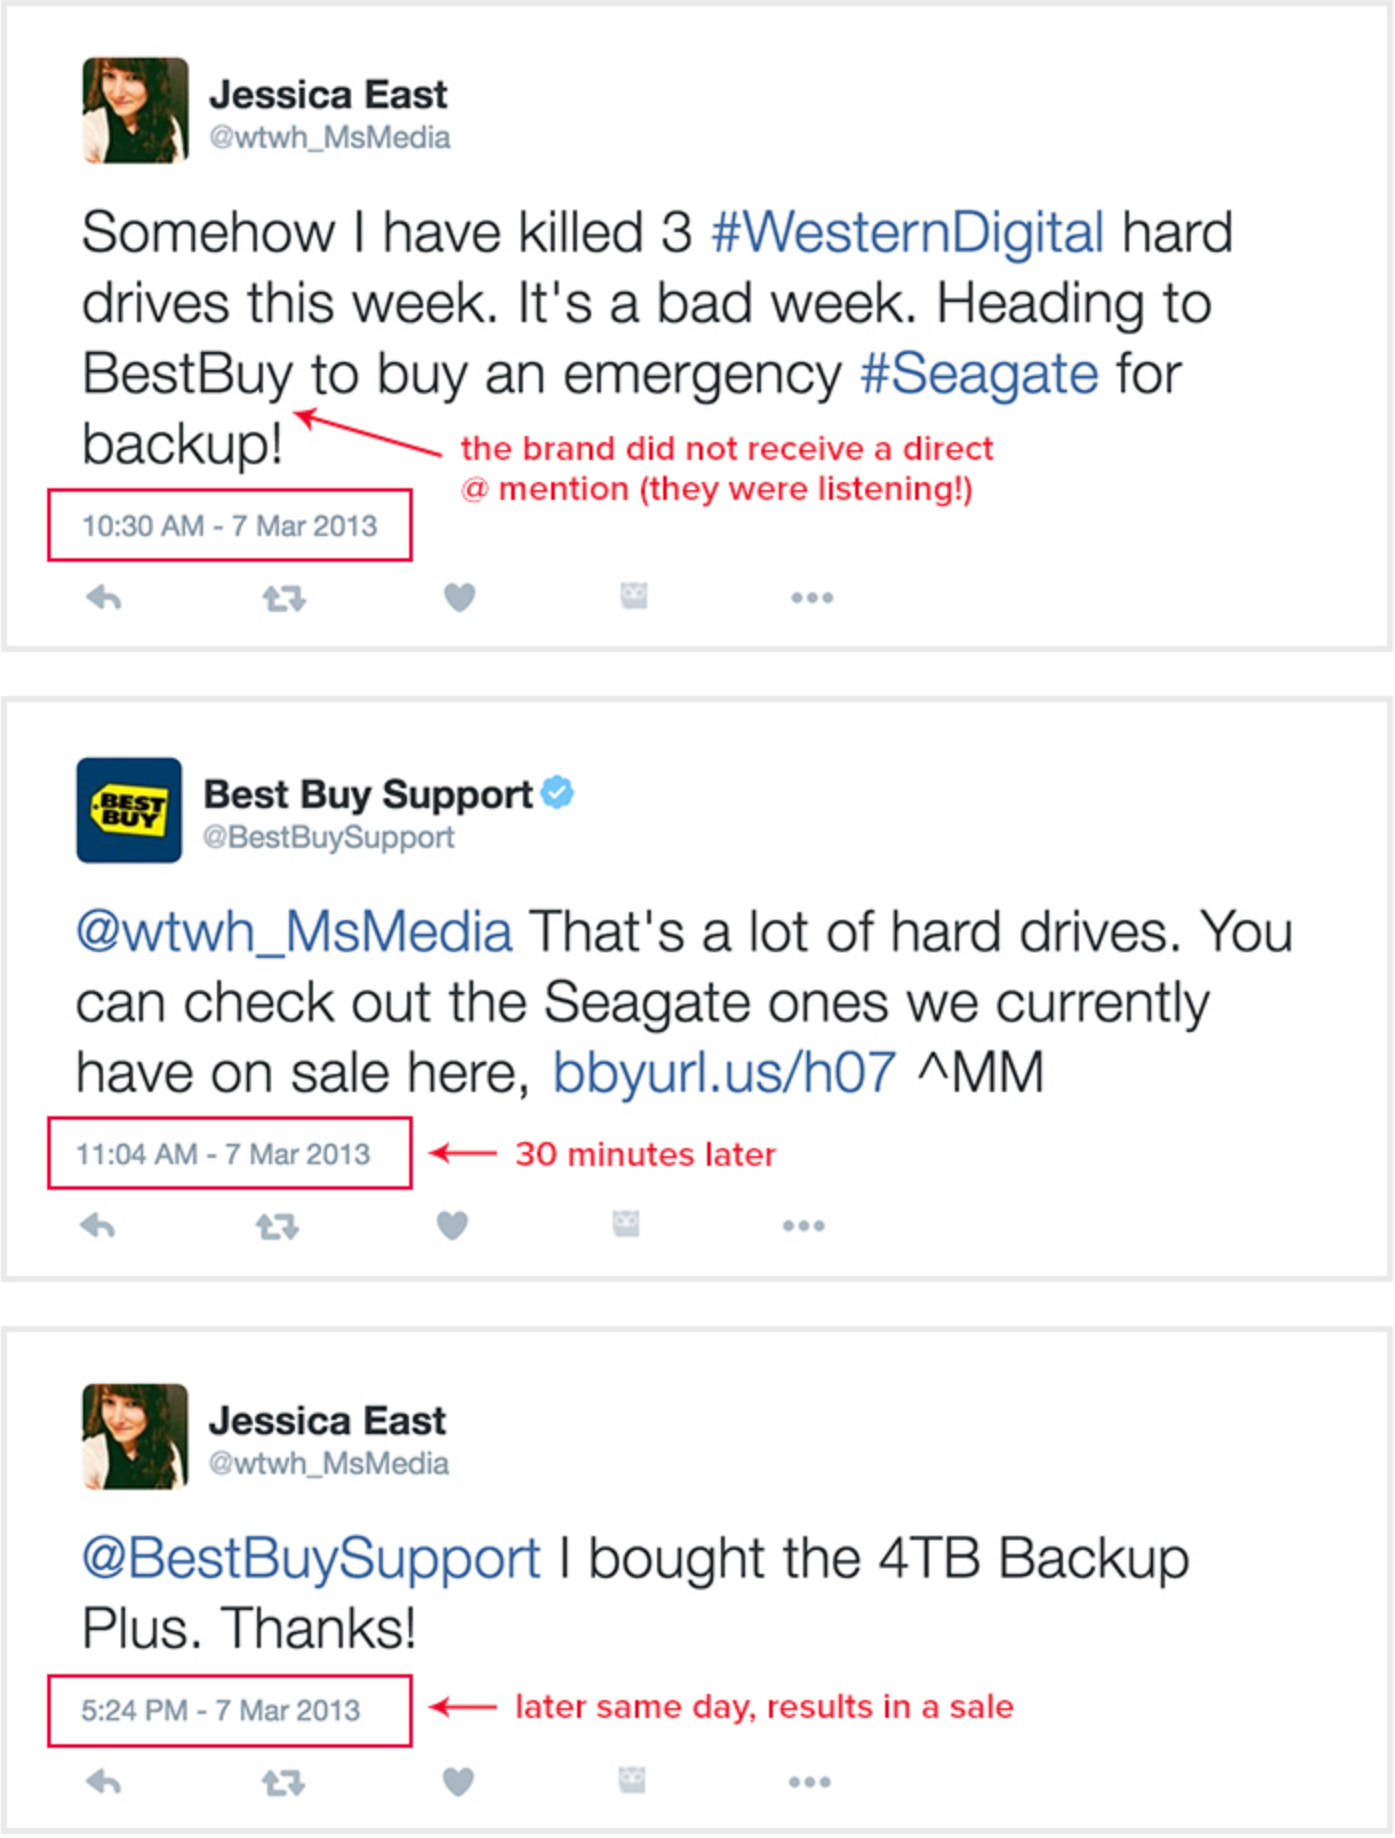 Positive interaction between Best Buy and a customer on social media